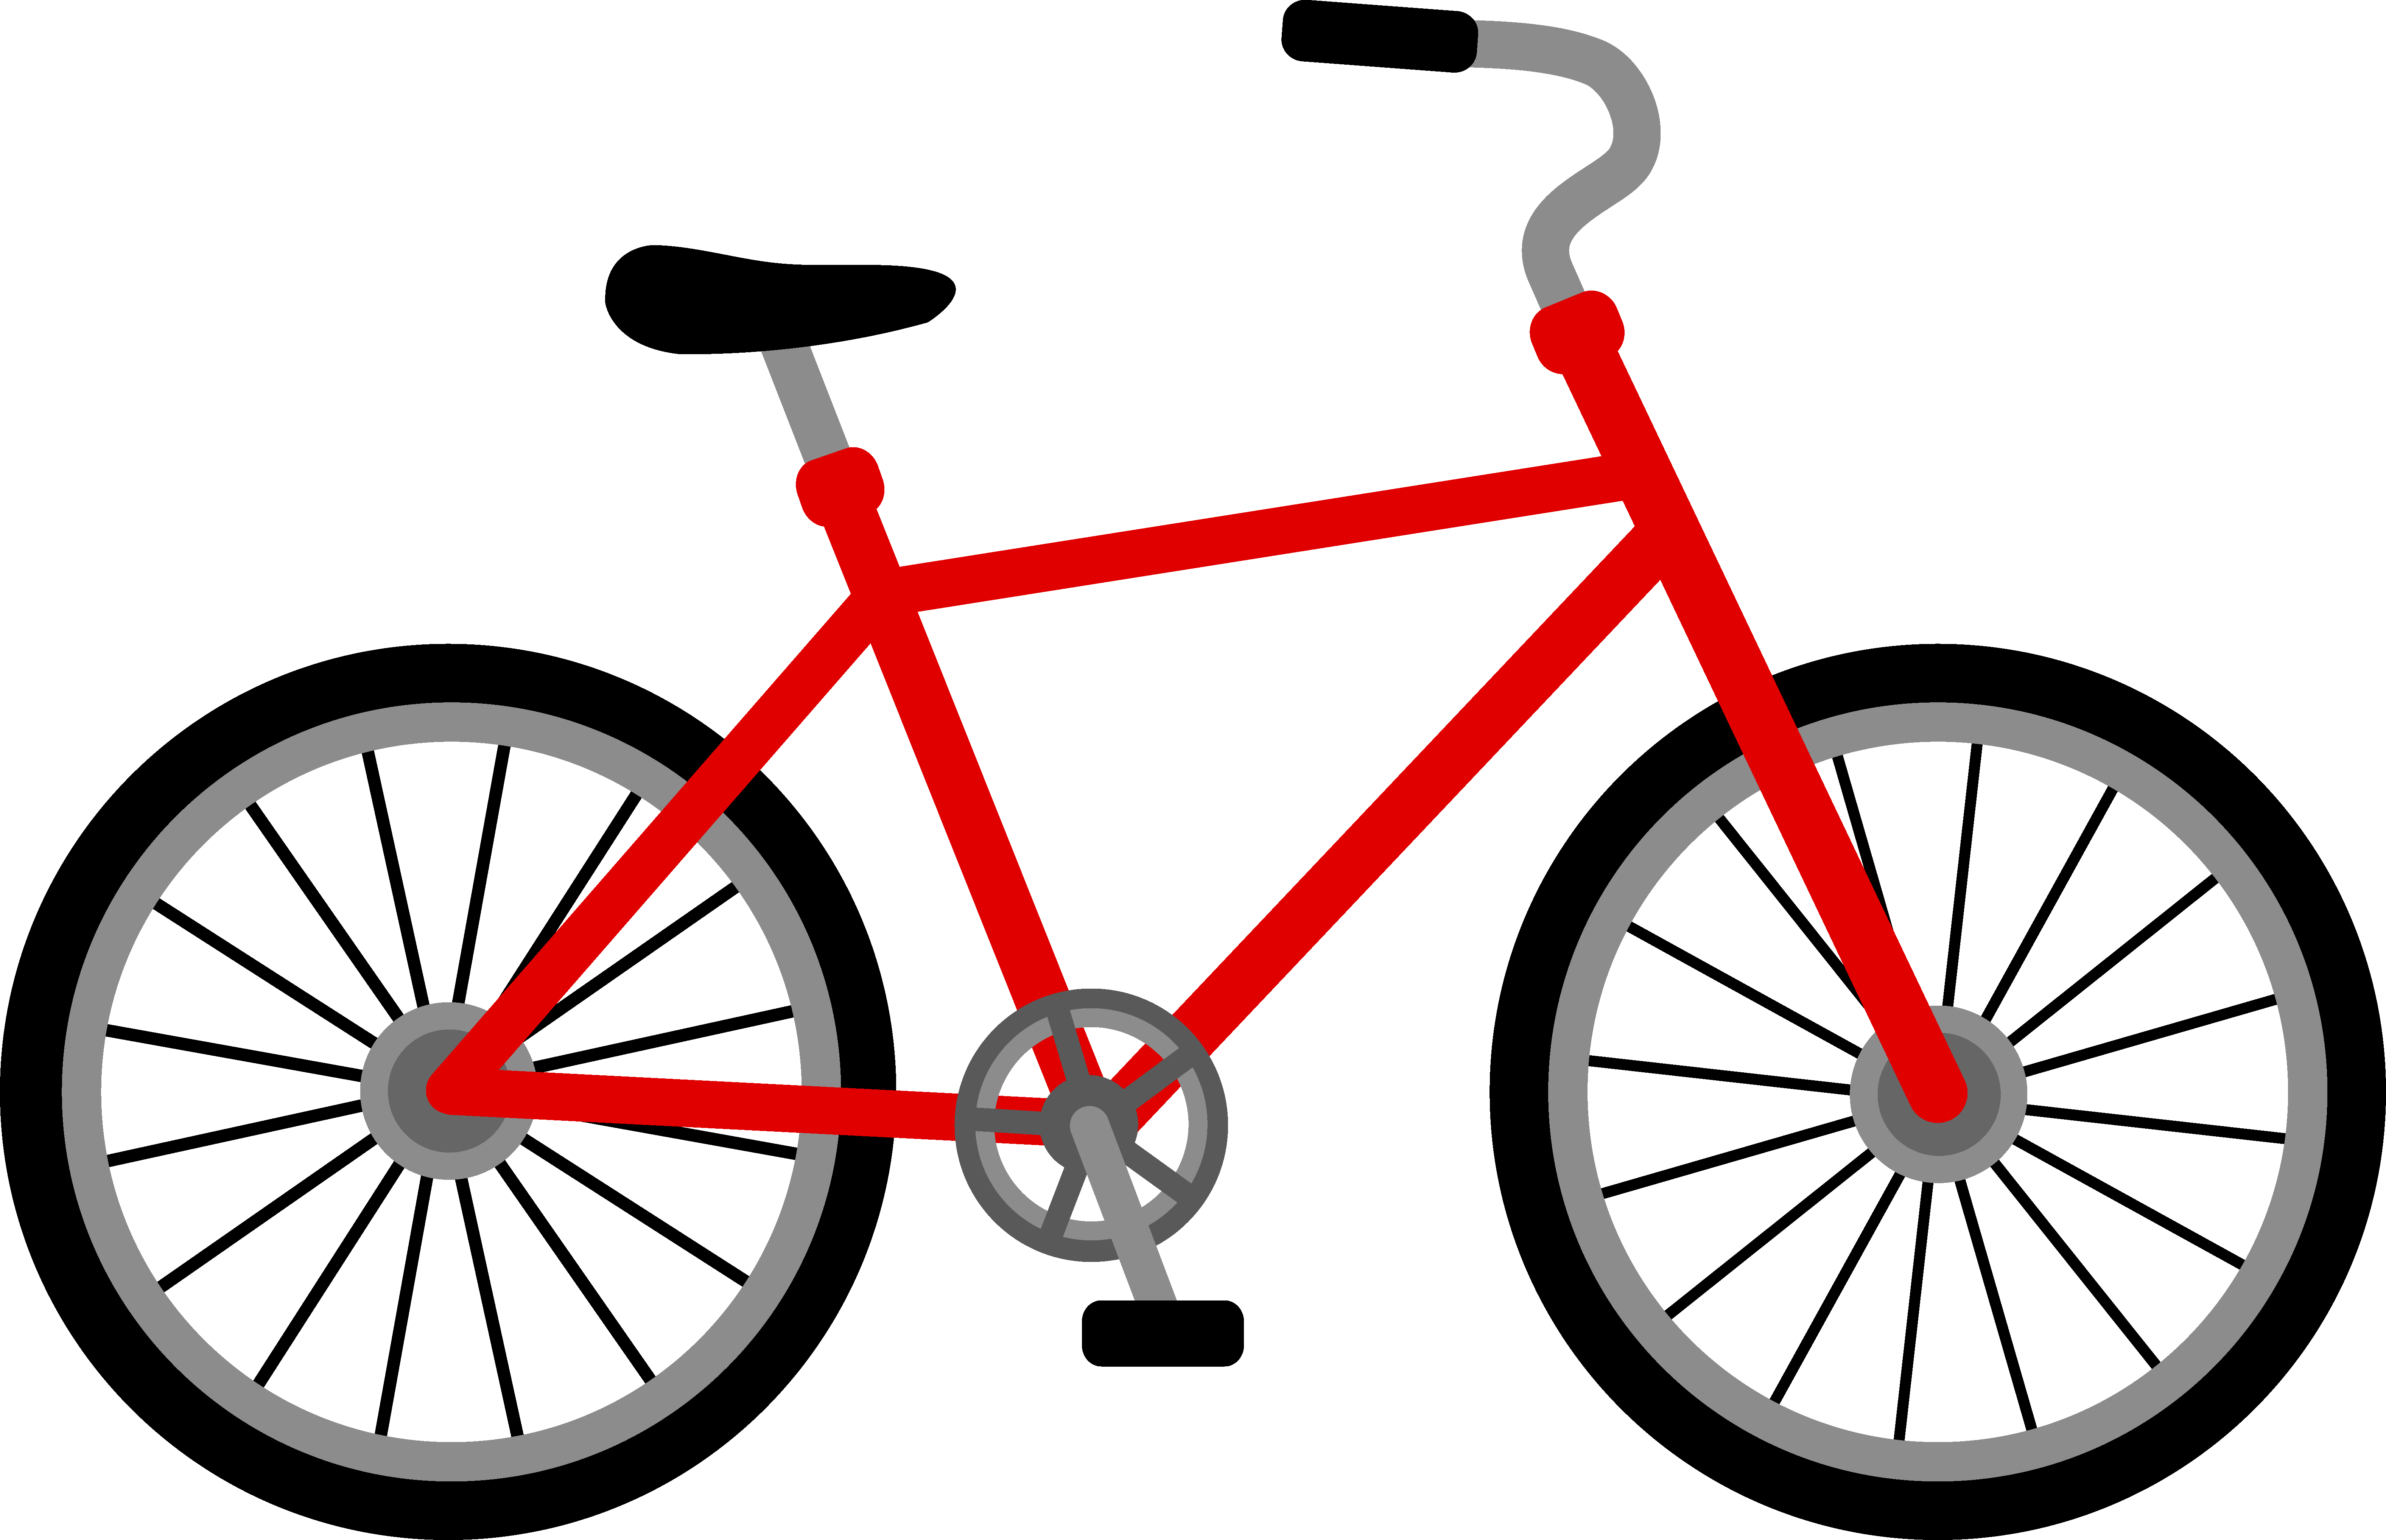 Free cycling clipart images. Bike clip art pictures